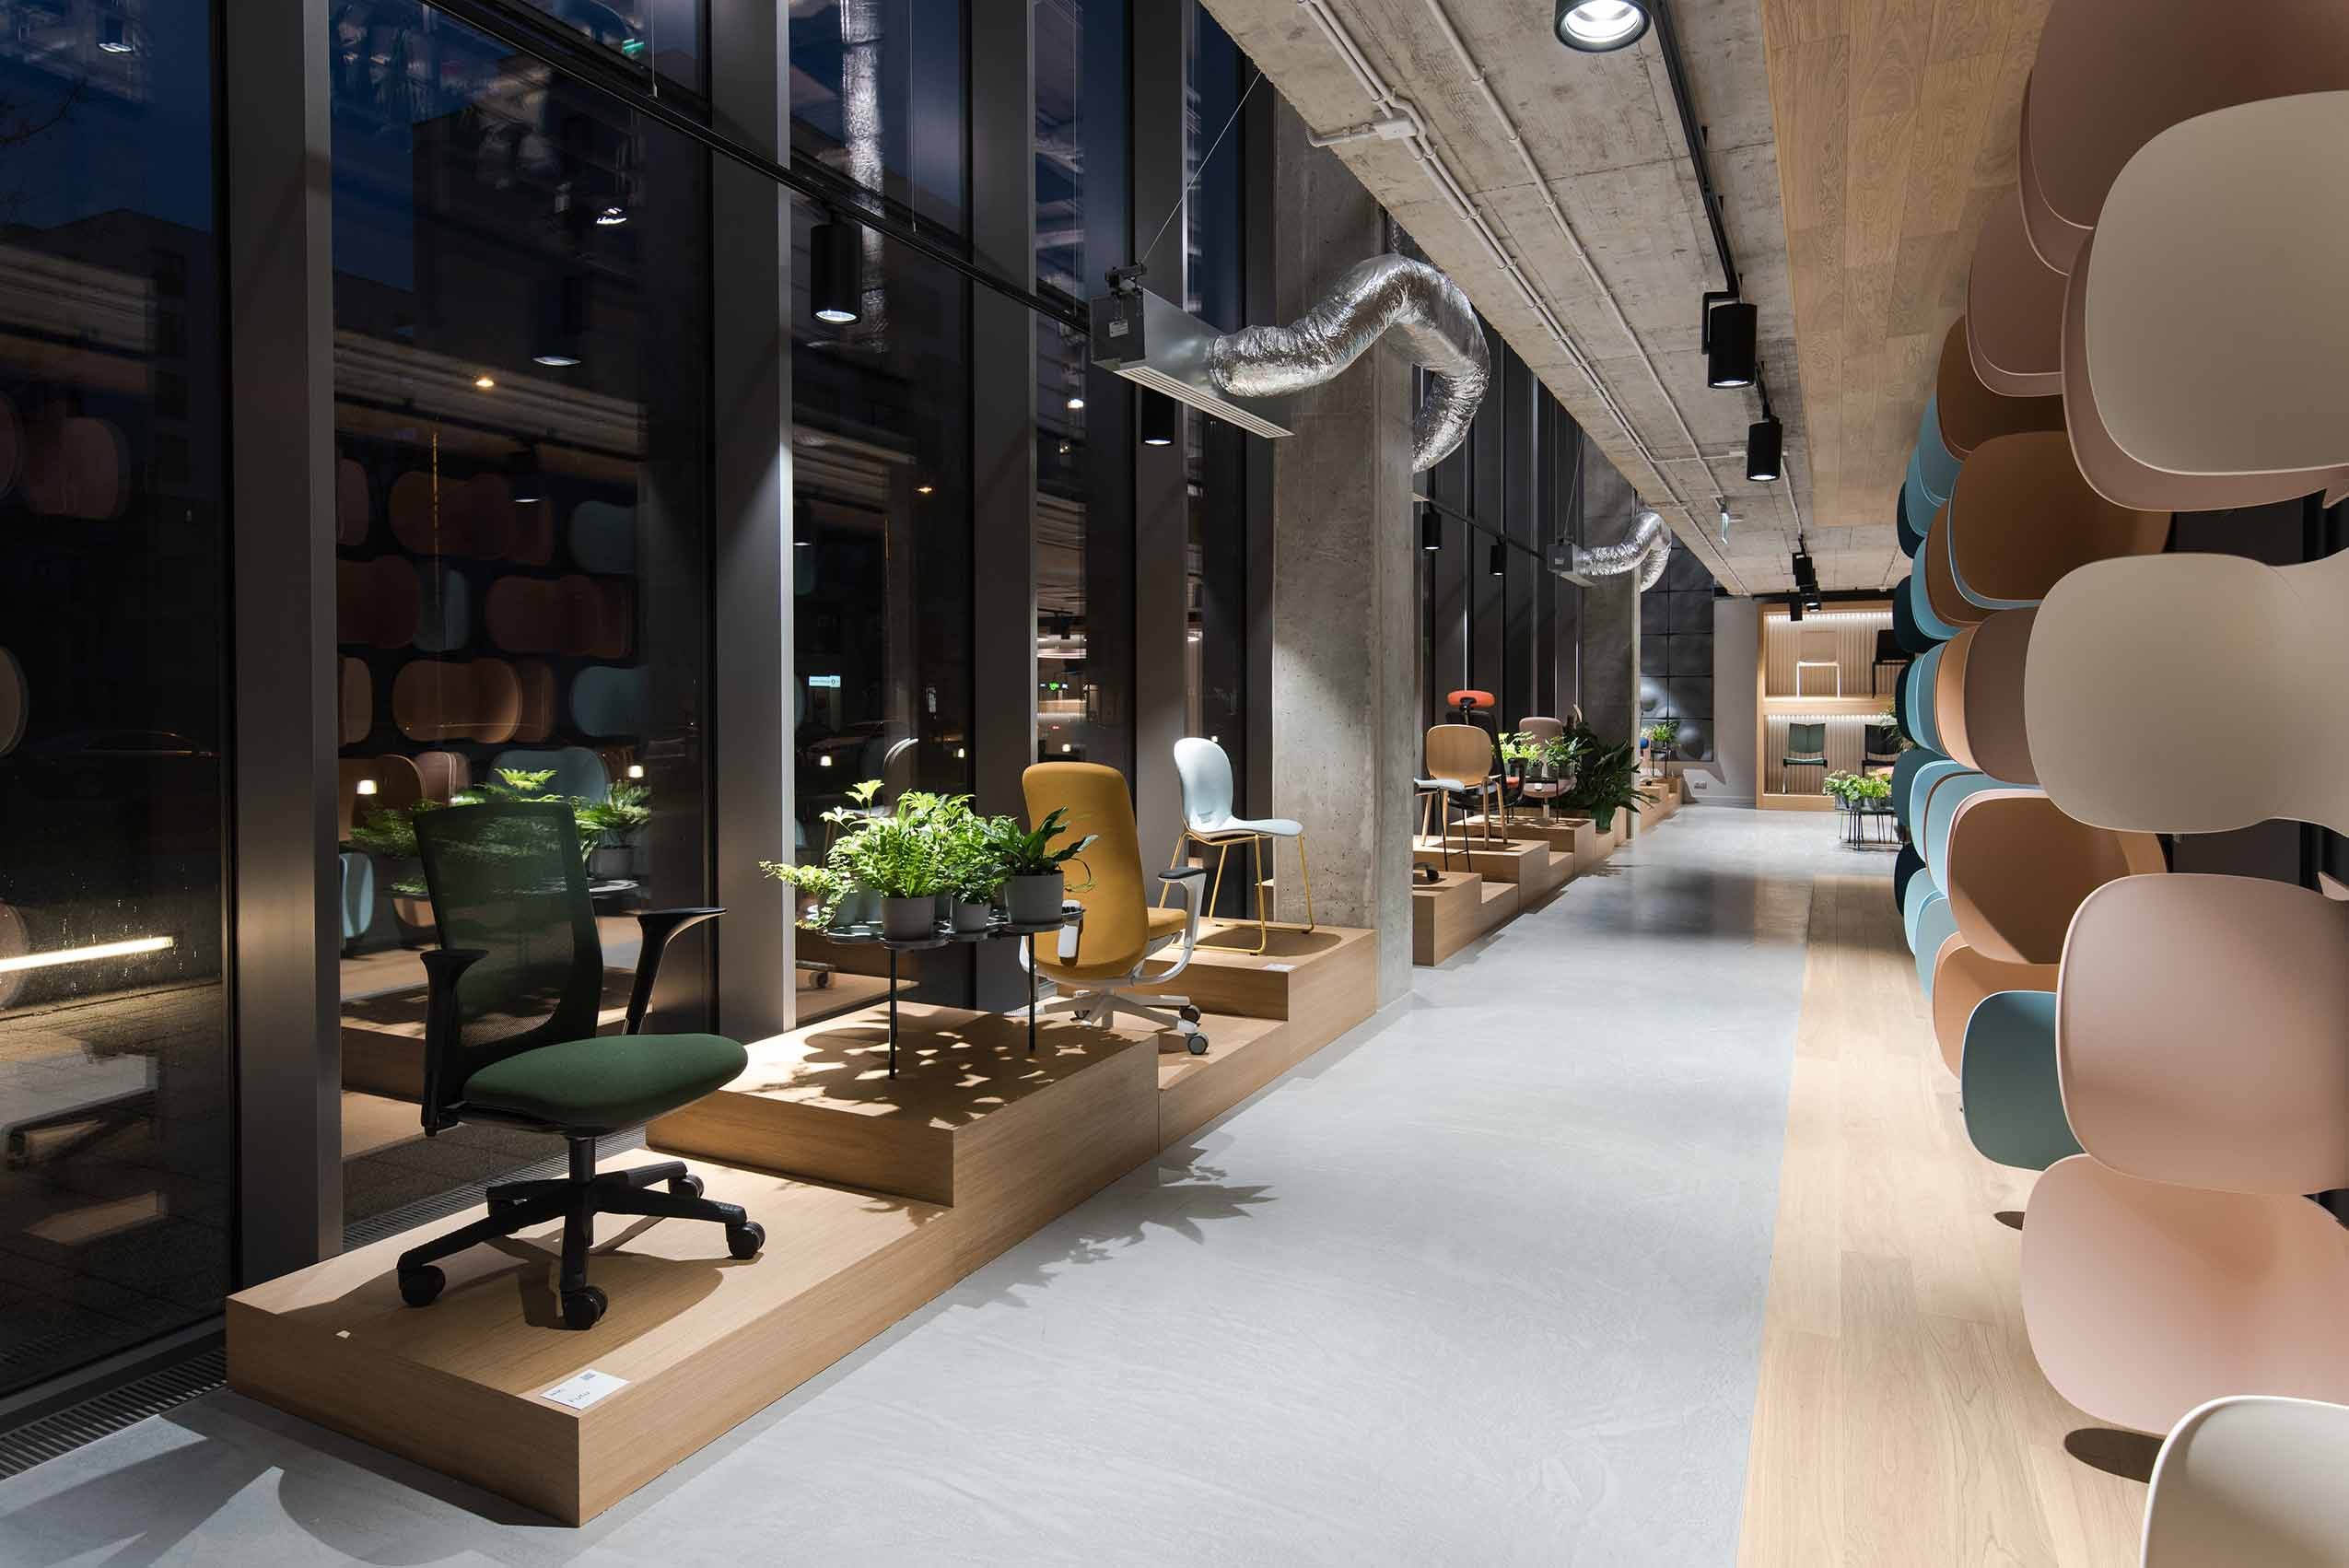 Flokk furniture showroom in poland warsaw scandinavian design led interior architecture desk chairs by HÅG and RBM